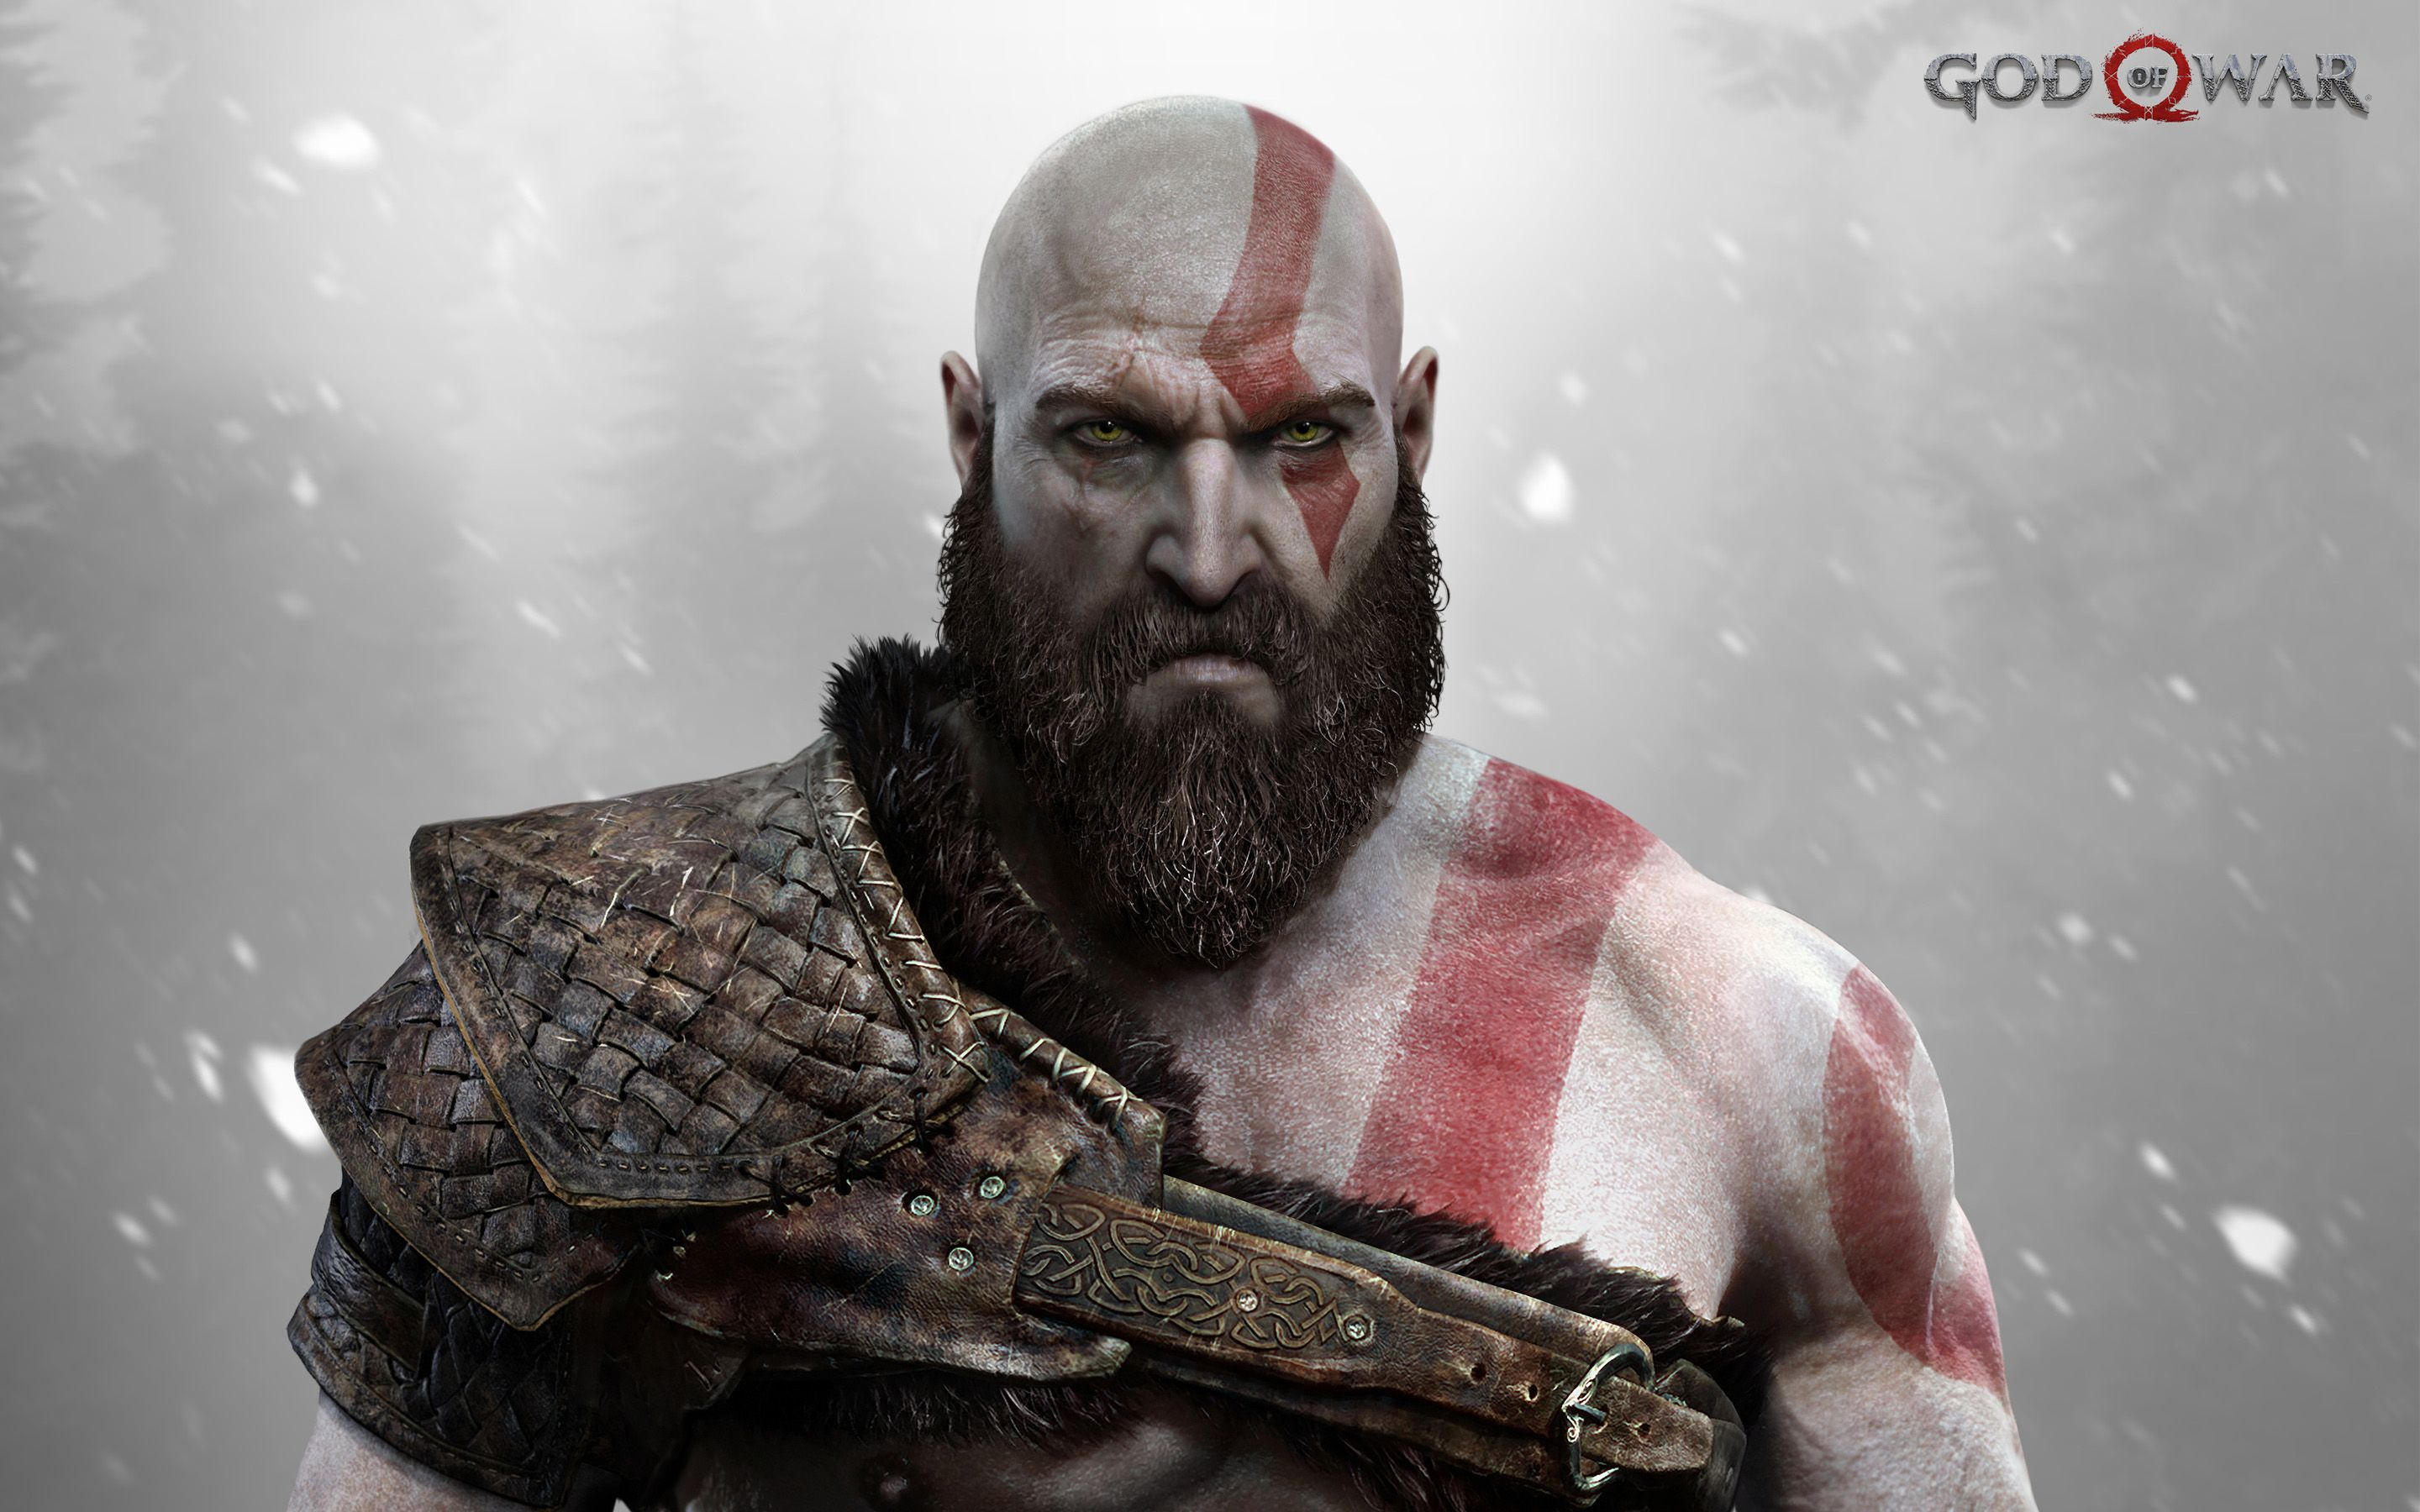 God Of War Images Hd Wallpaper Download